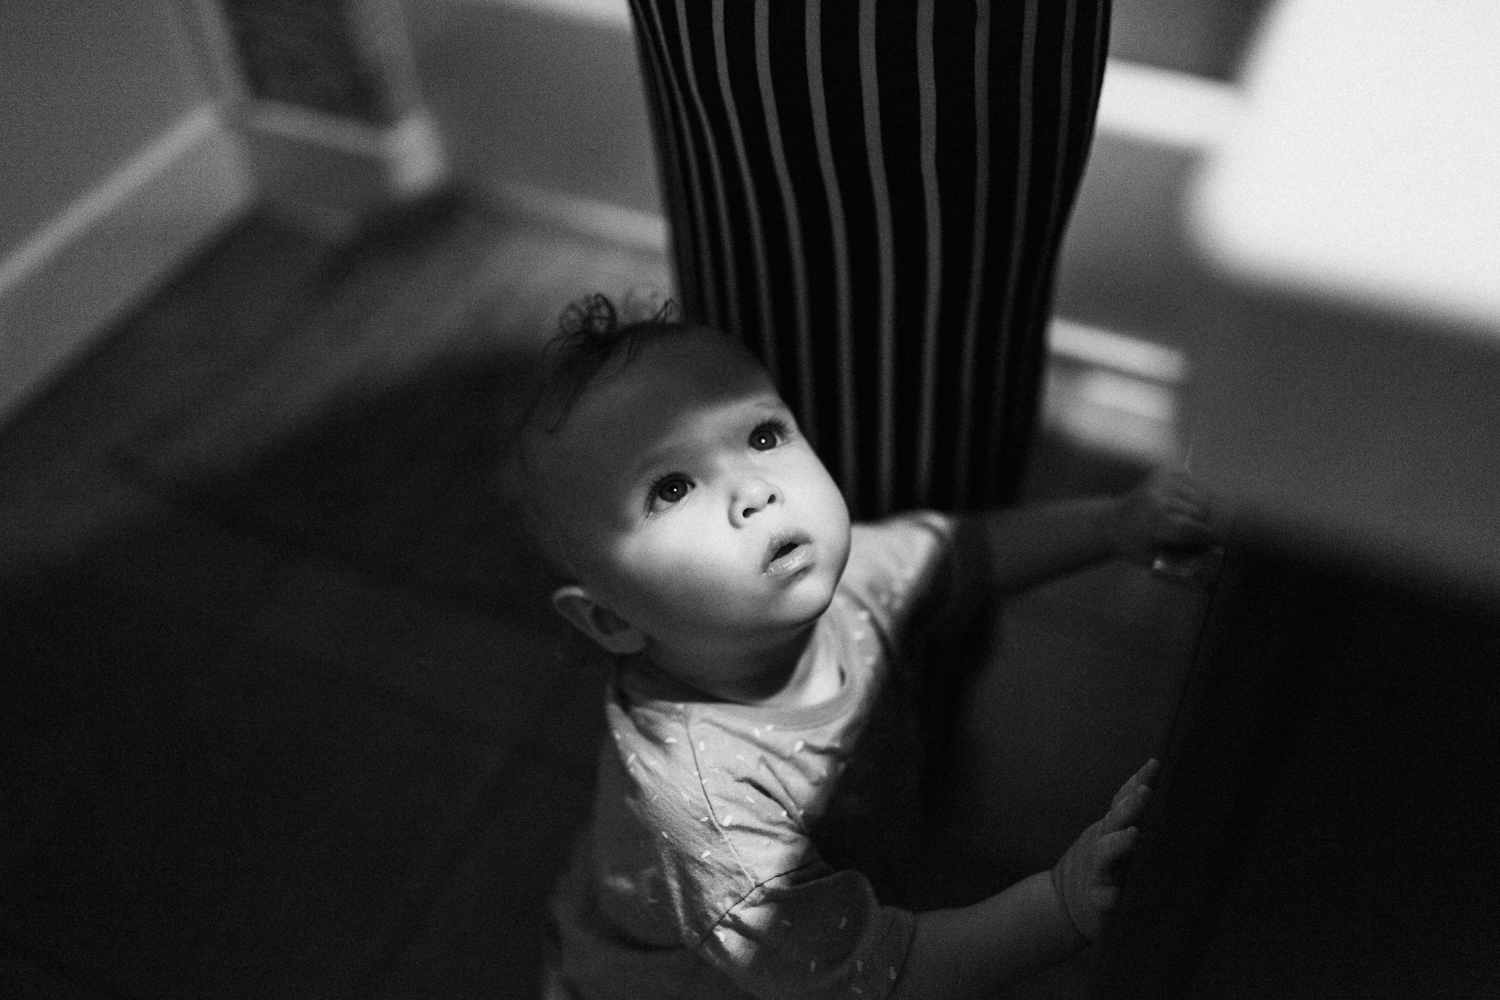 candid-black-and-white-photo-little-girl-looking-up-at-mom-with-during-in-home-session-with-jen-fairchild-in-salt-lake-city-utah